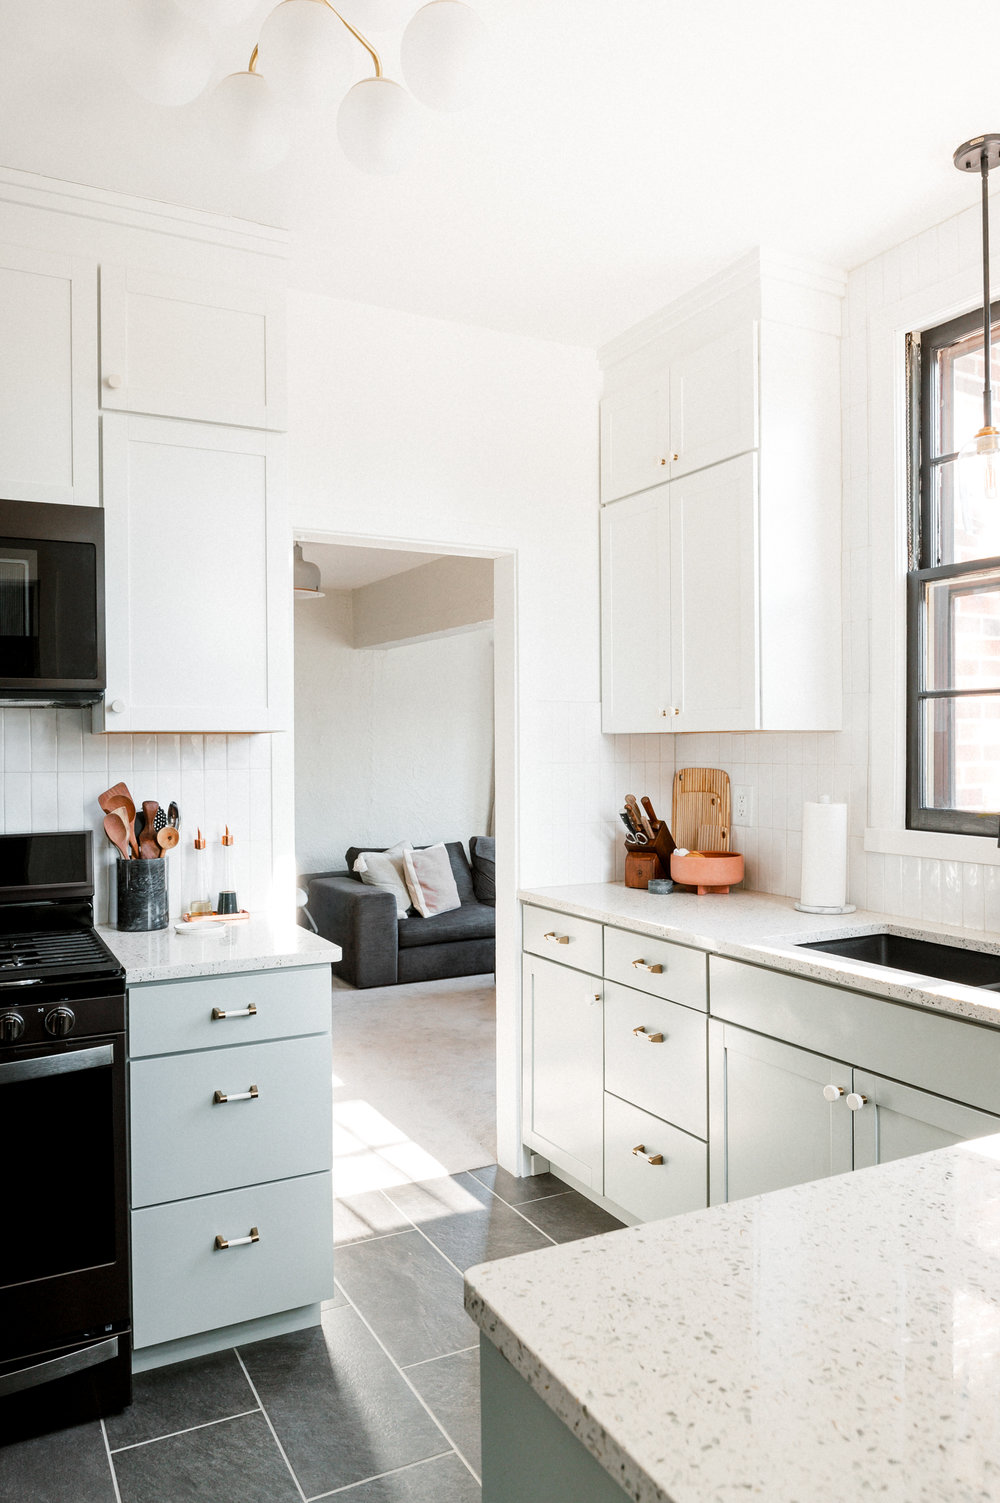 Our Diy Modern Kitchen Renovation The Day Shift